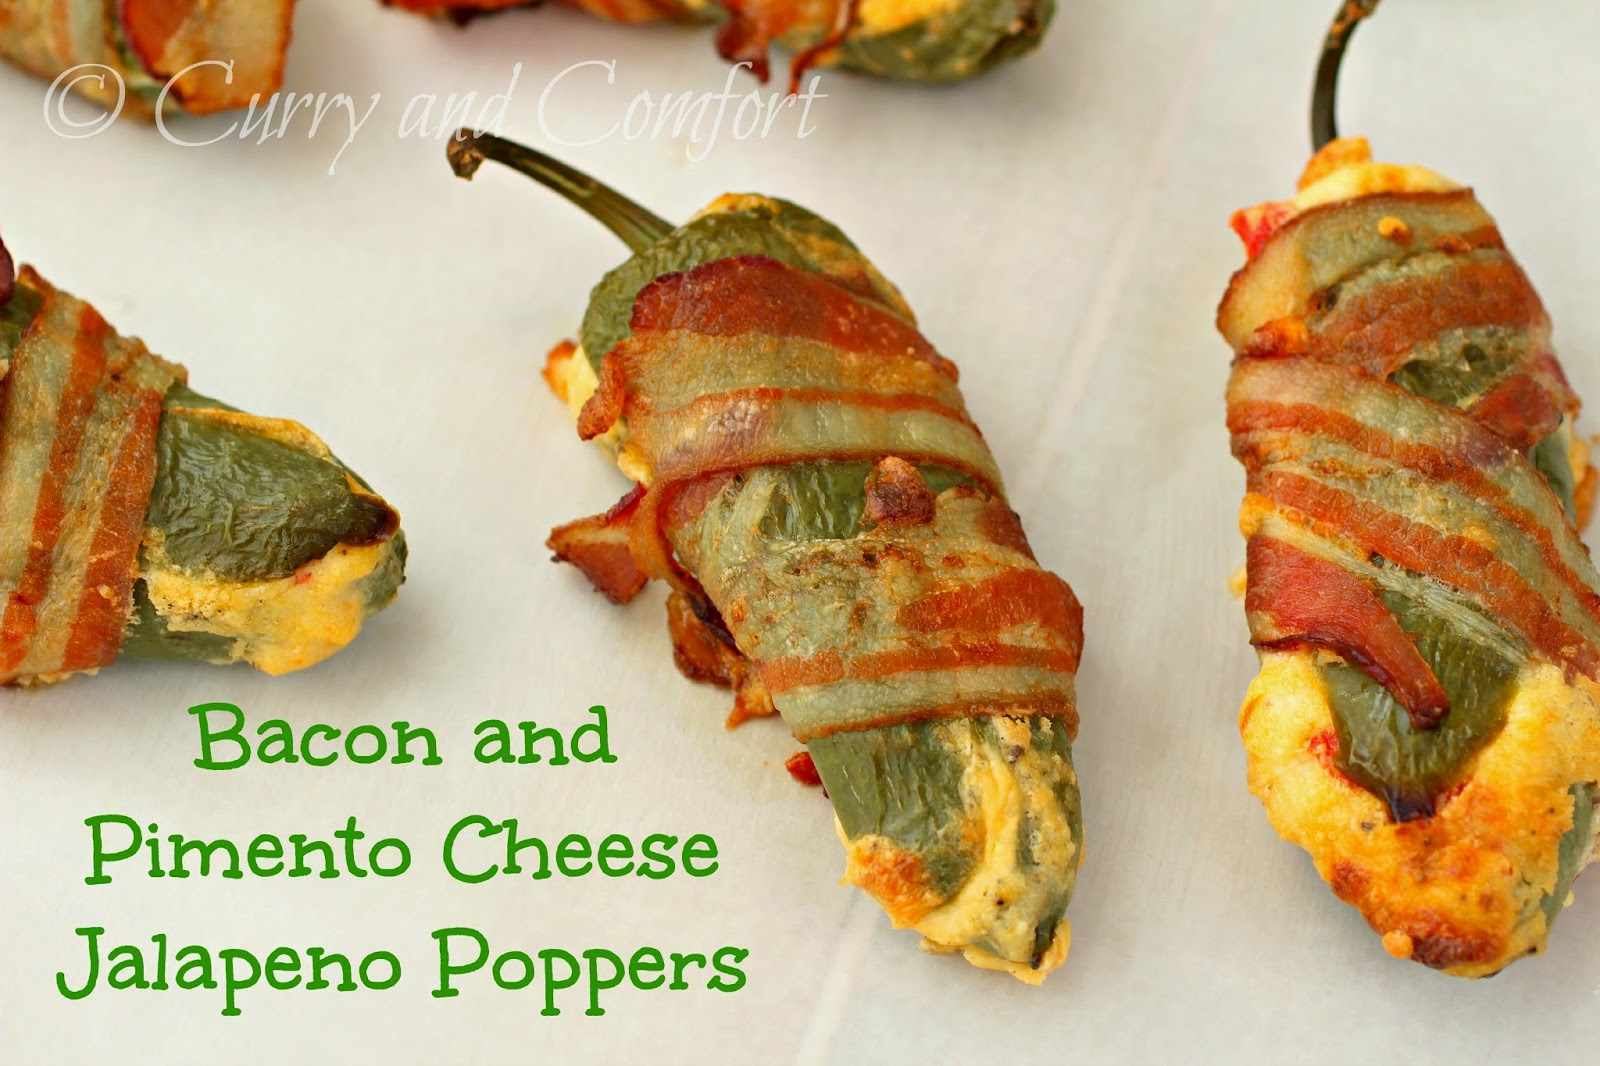 Kitchen Simmer: Bacon and Pimento Cheese Jalapeno Poppers